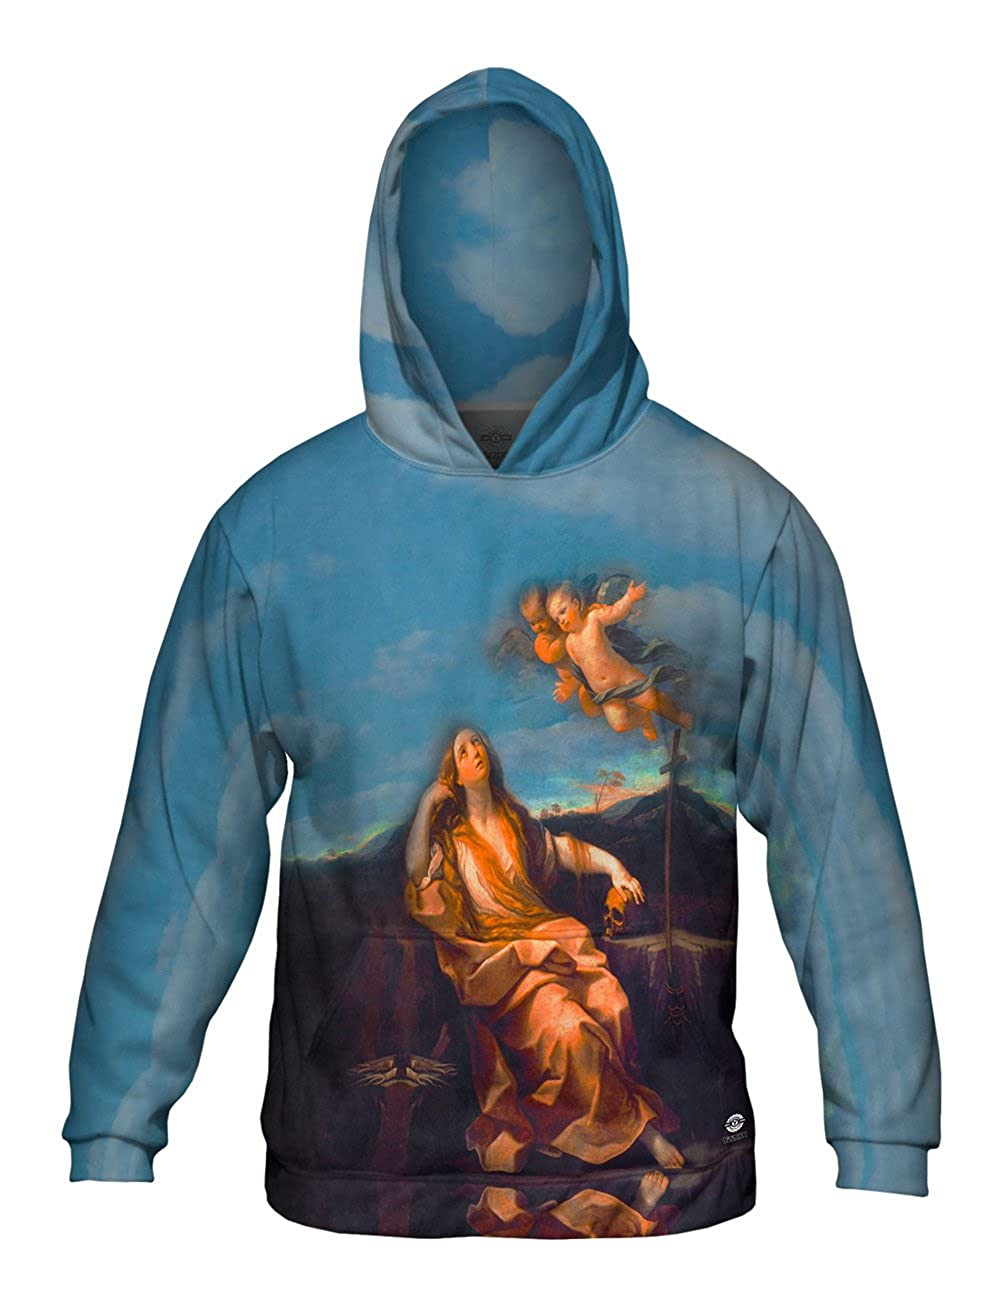 Mens Hoodie 1632 -Allover Print St Mary Magdalene Yizzam- Guido Reni